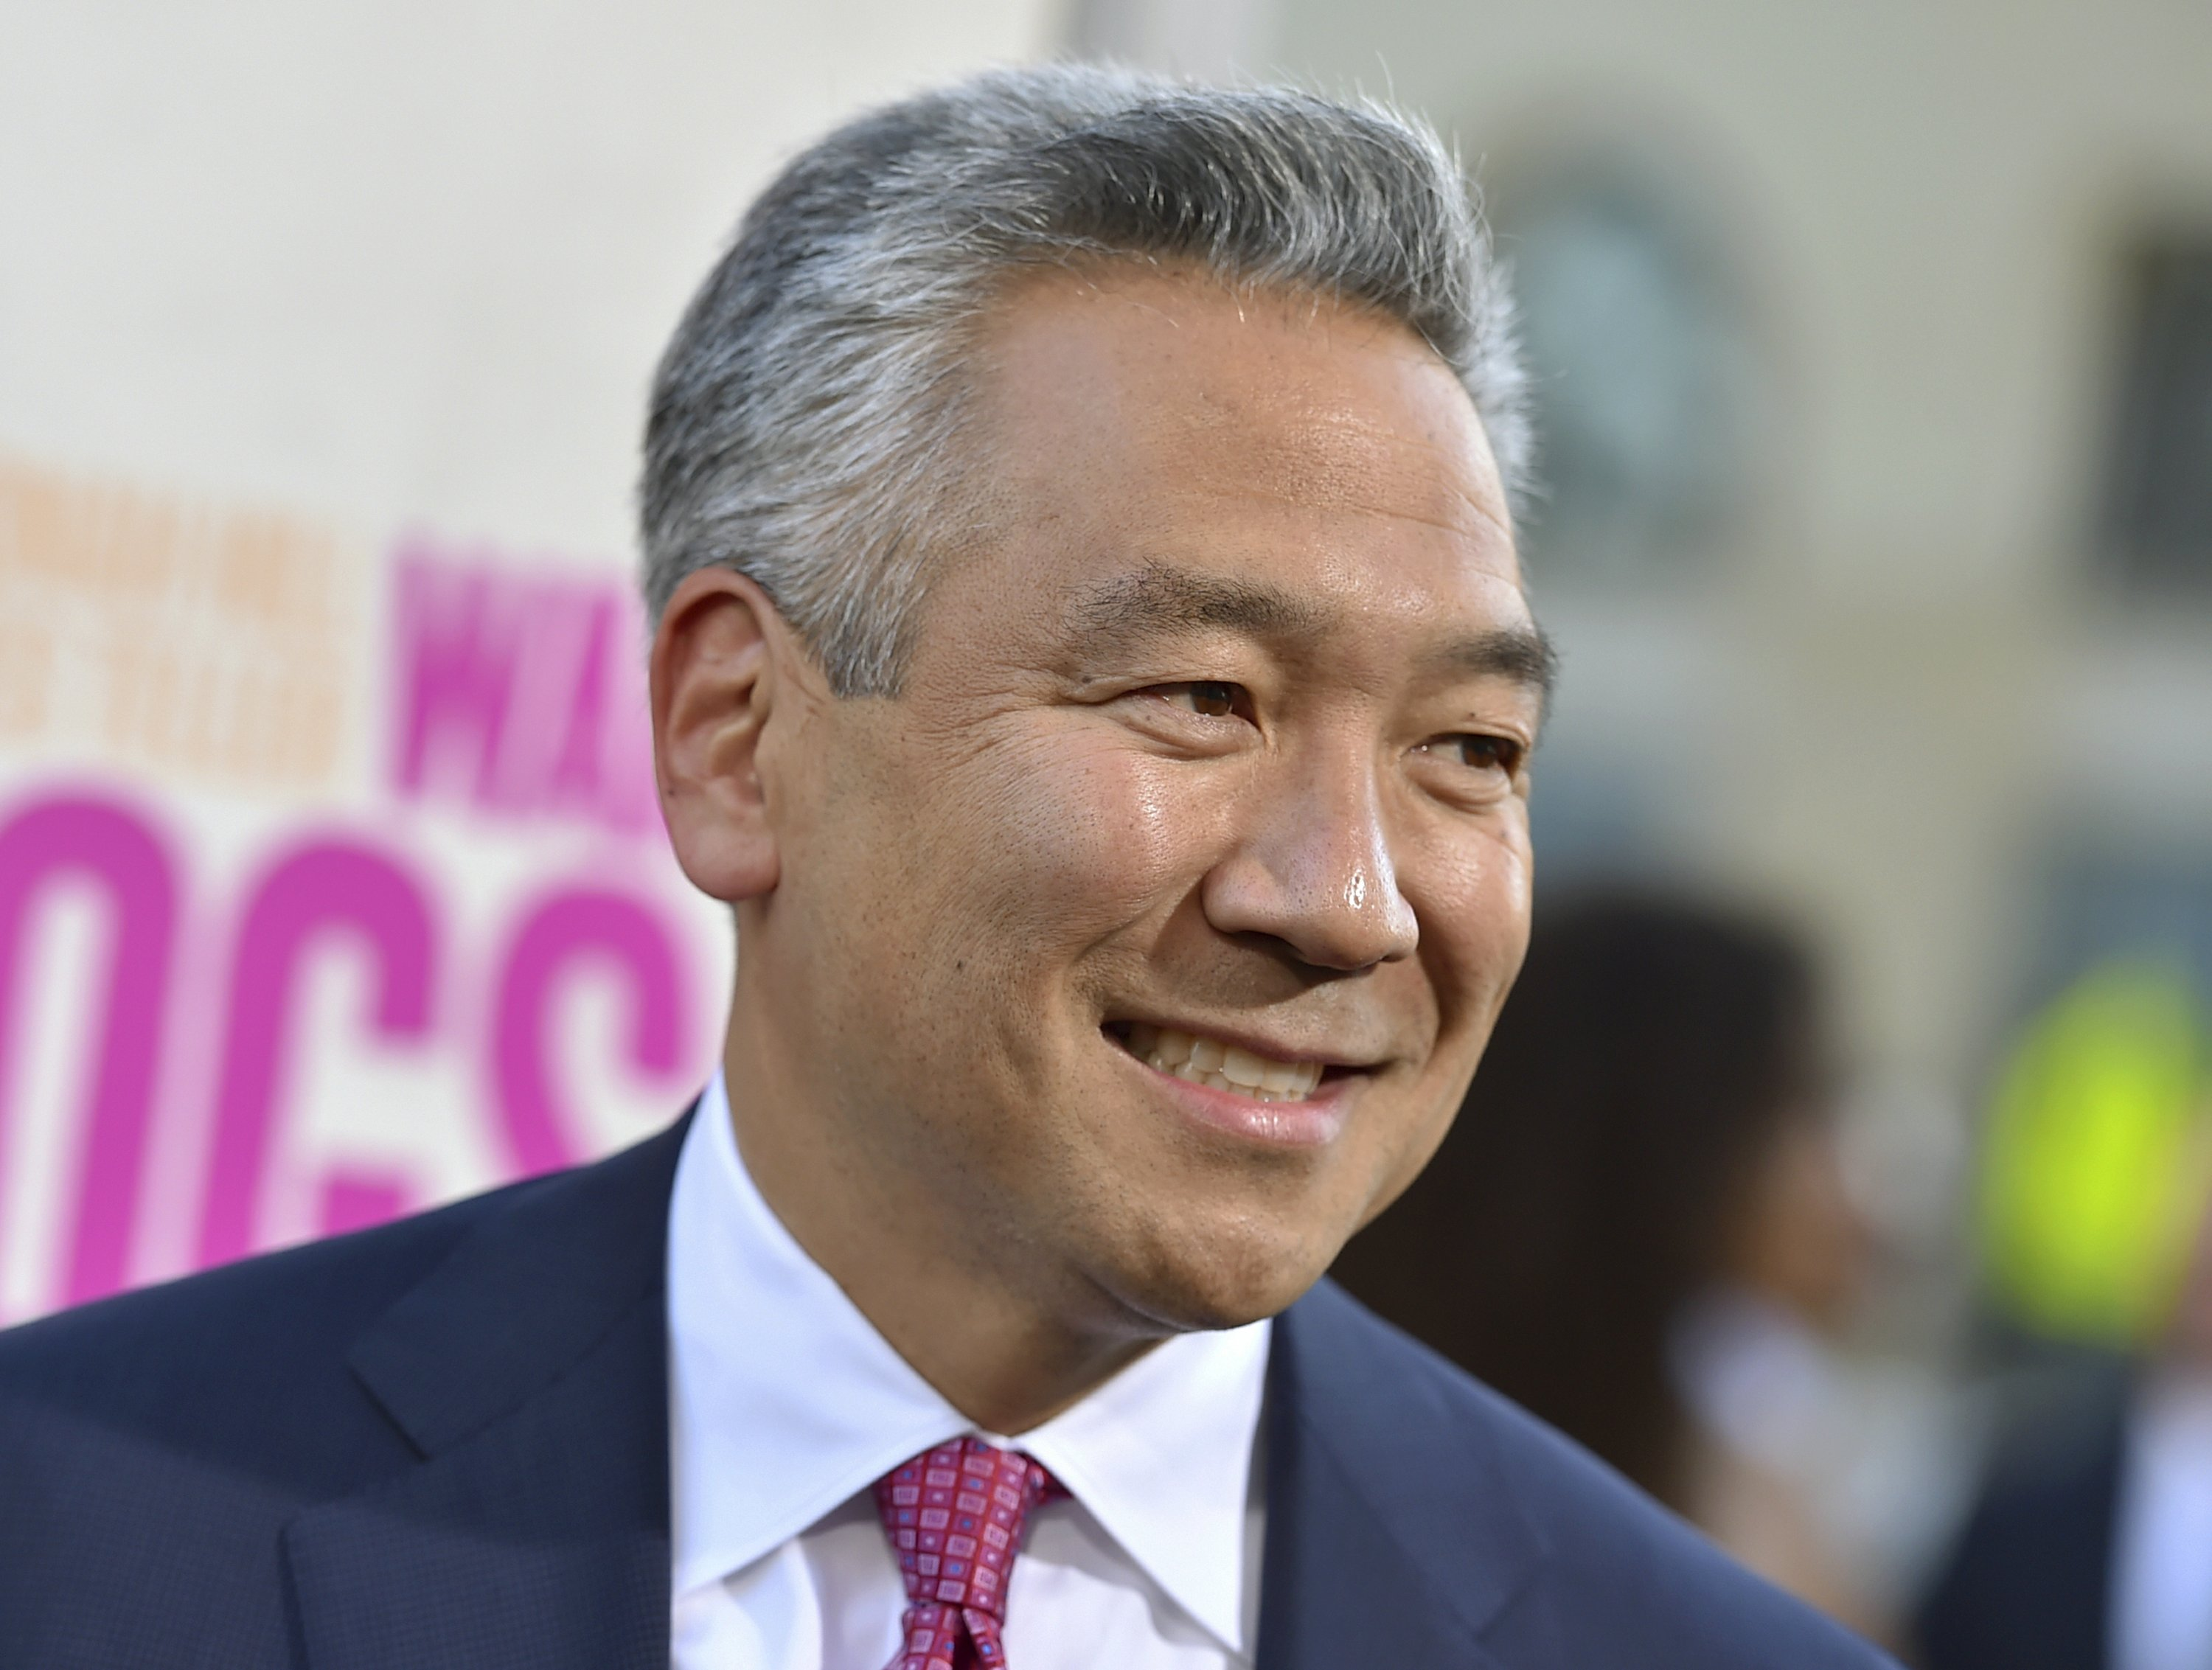 Warner Bros.' chief Tsujihara steps down following scandal